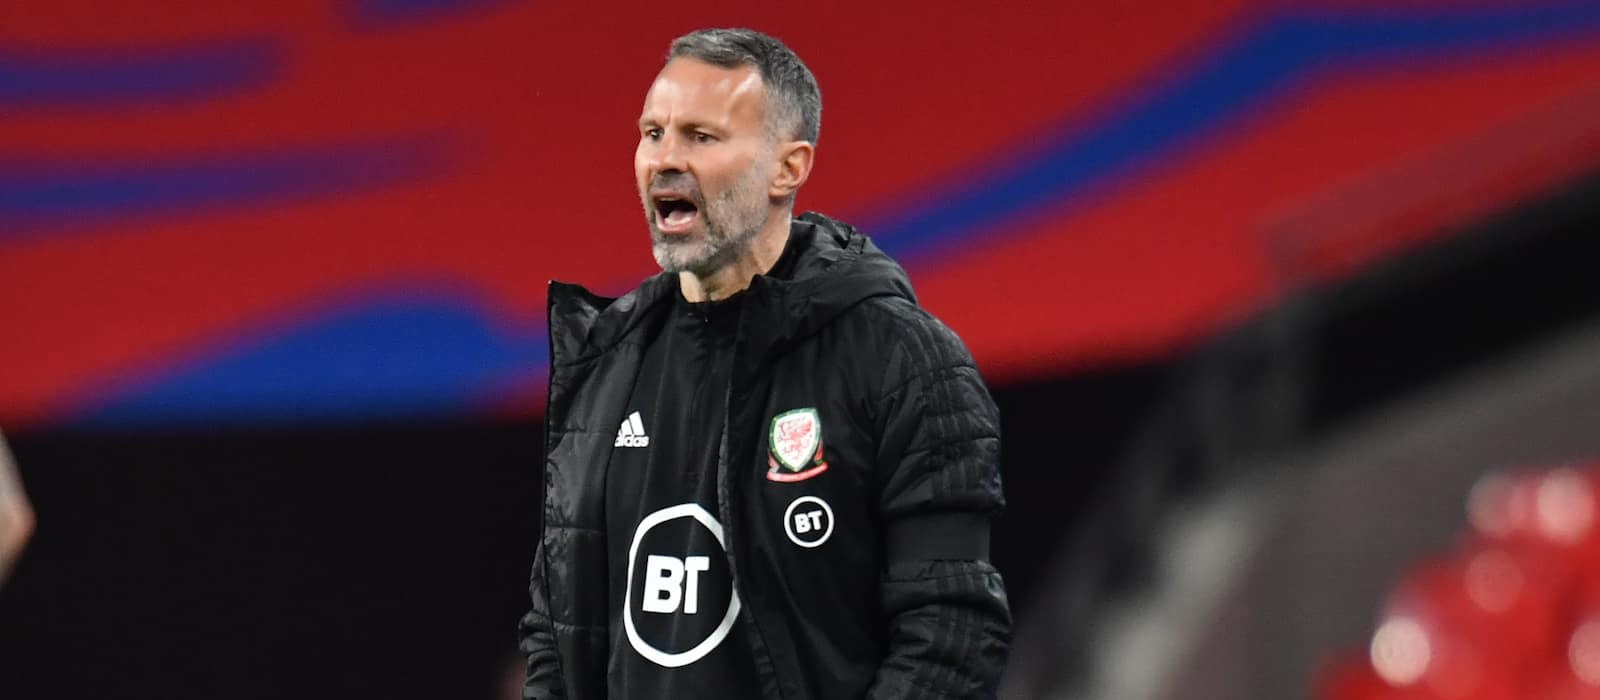 Ryan Giggs could be next Man United manager, says Mark Hughes